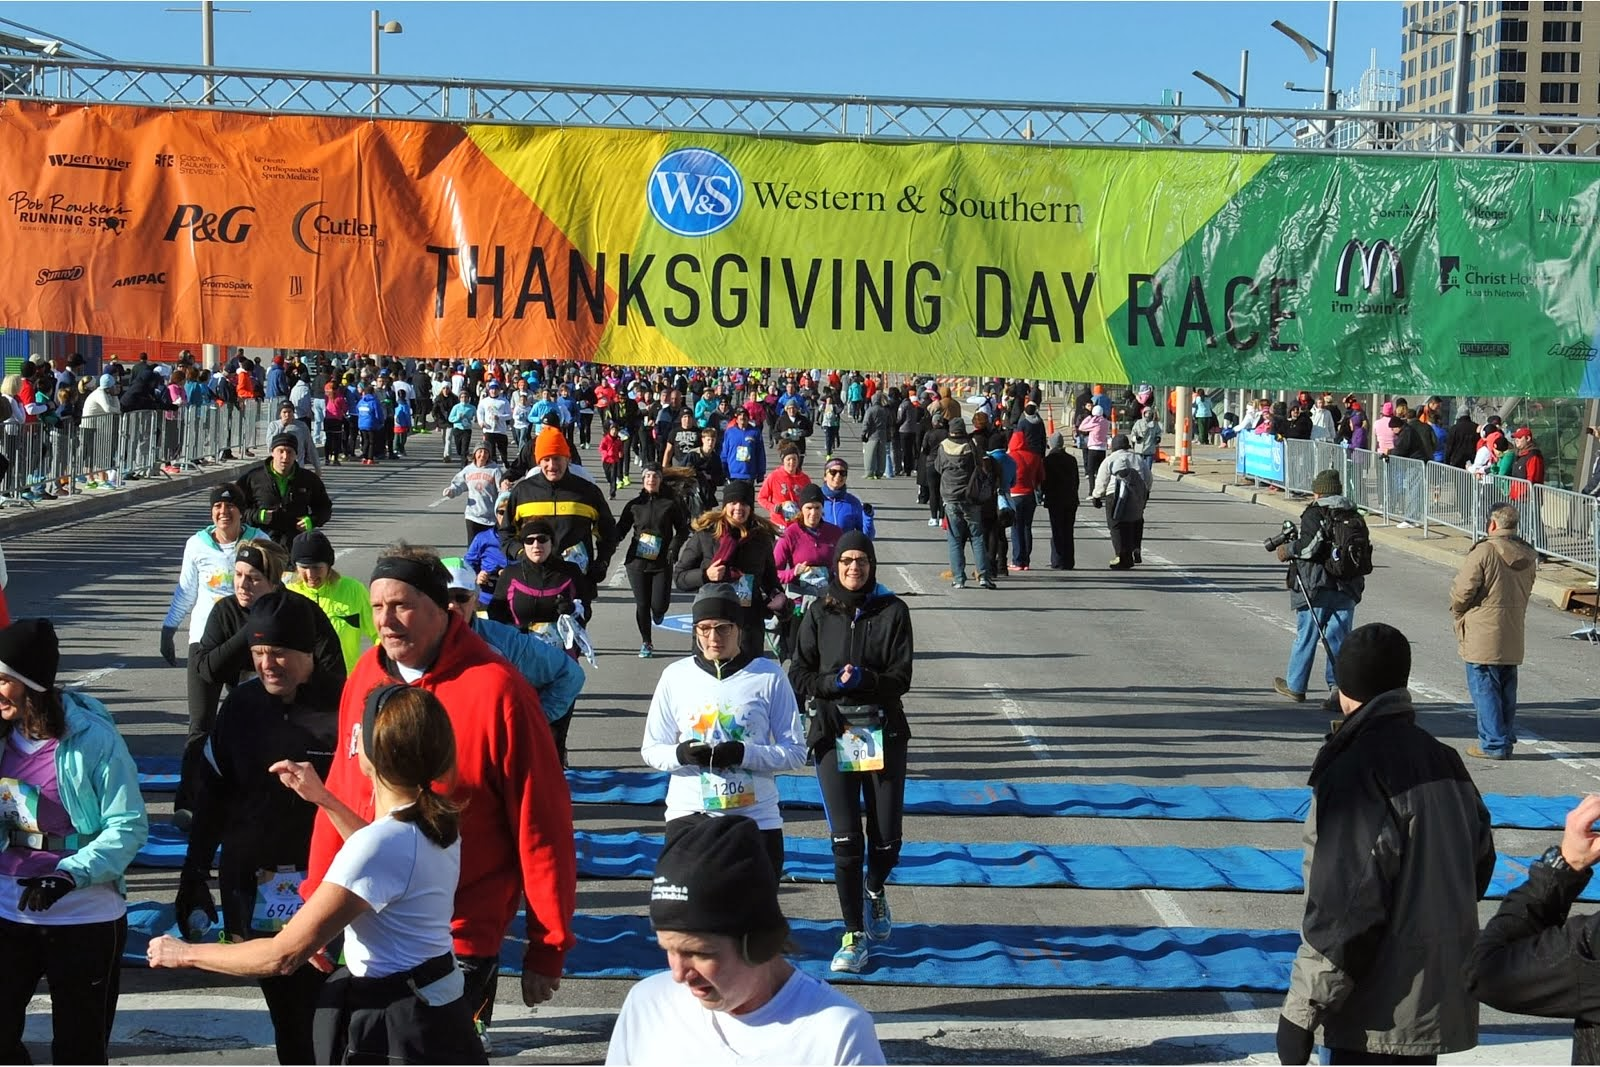 Thanksgiving Day Race 10K